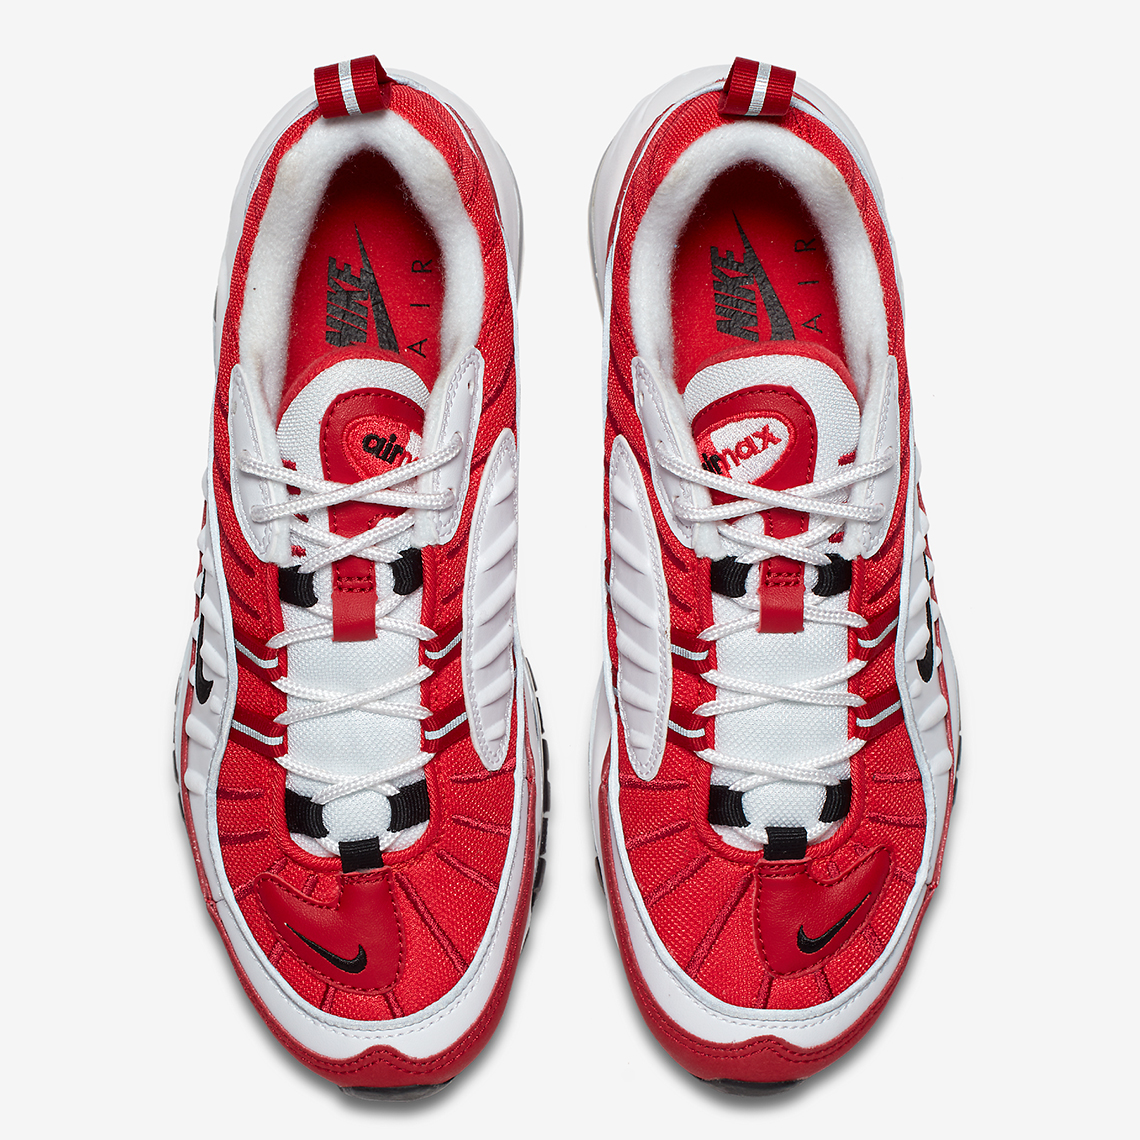 Nike Air Max 98 Valentines Day First Look AH6799 101